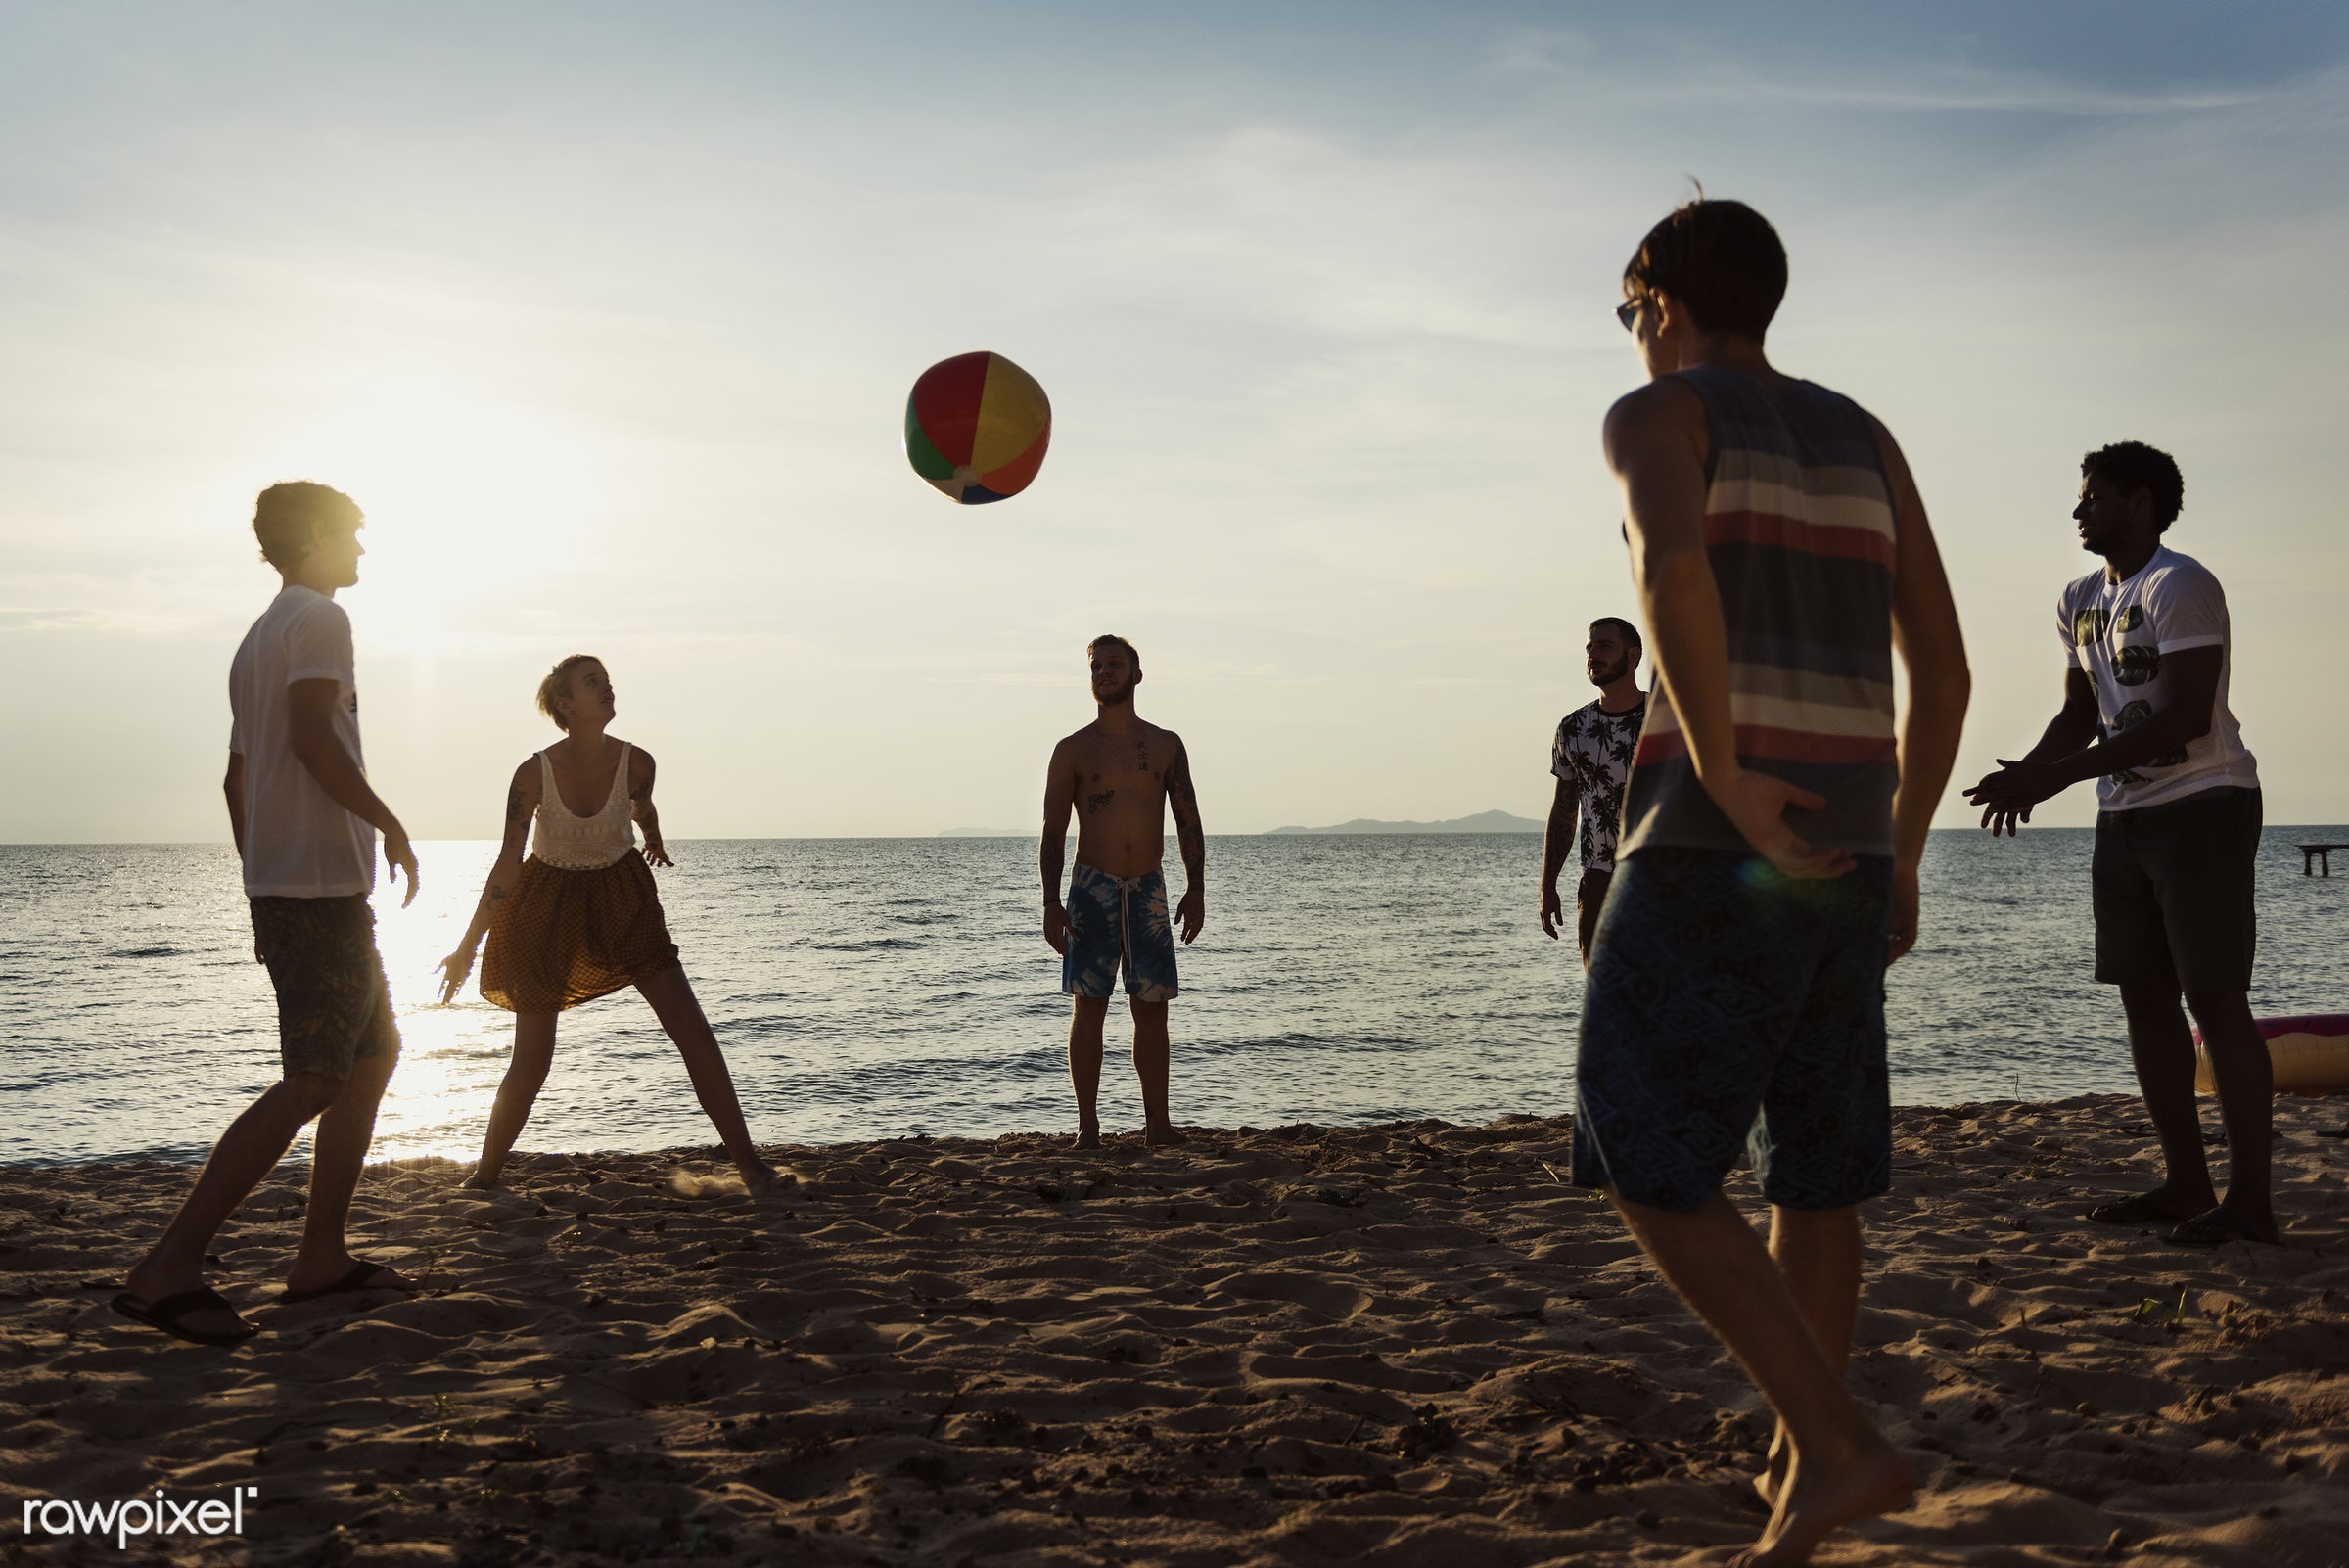 diverse, relax, inflatable ball, beach, recreation, people, coast, together, break, friends, tattoo, cheerful, sand, ball,...